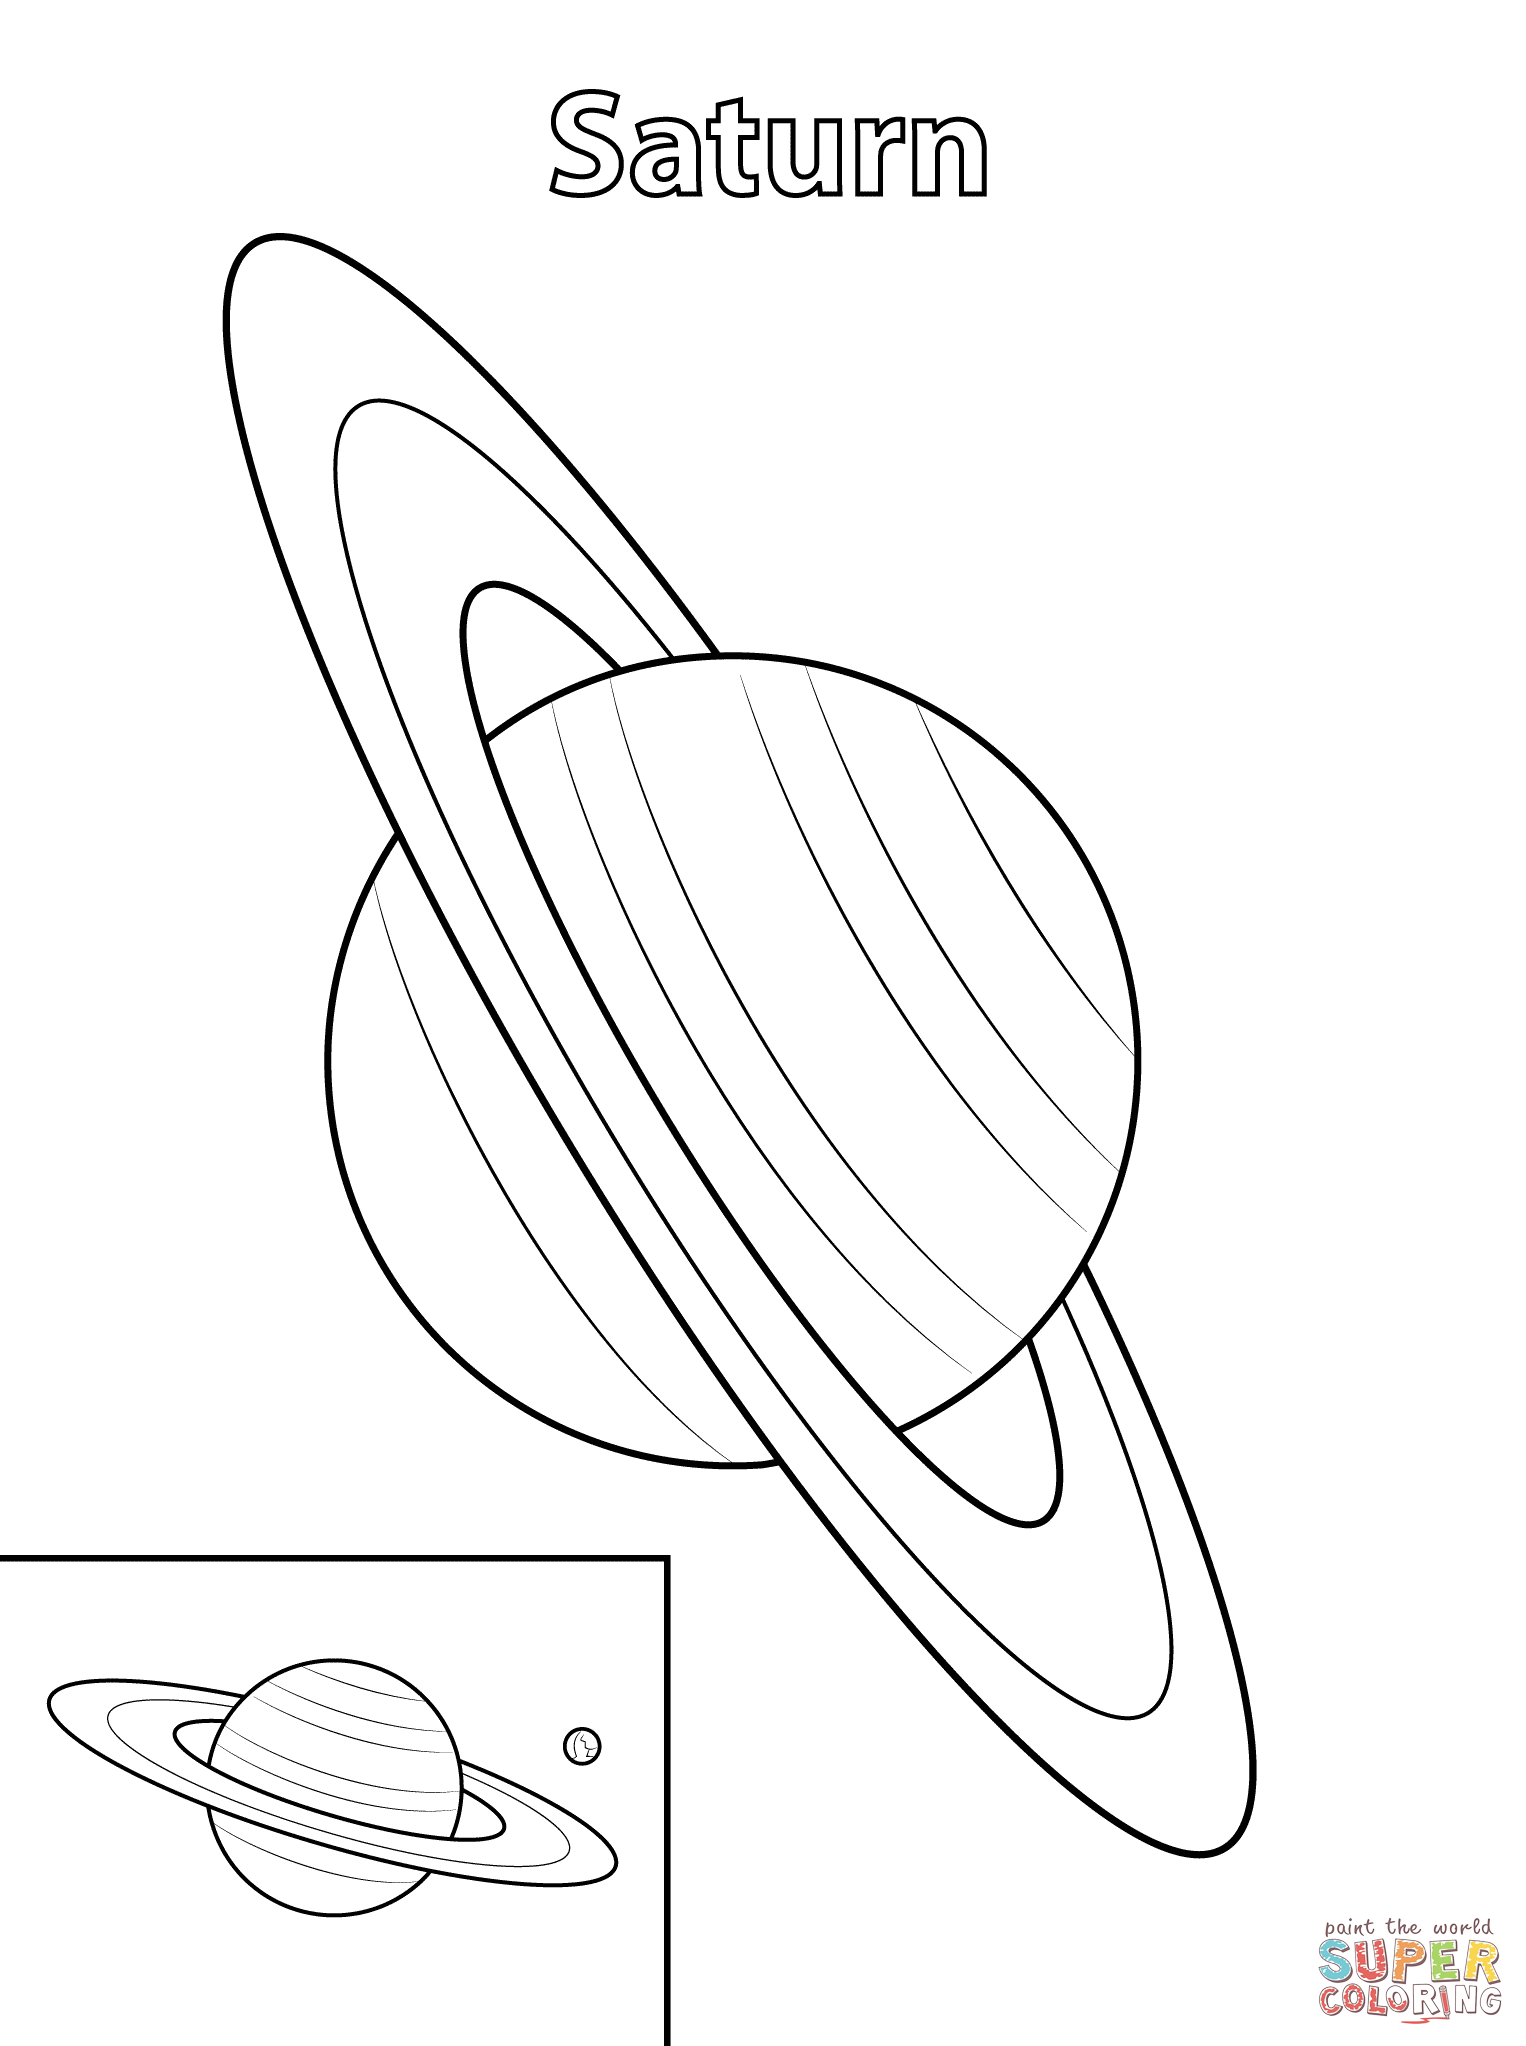 jupiter coloring page 100 images free coloring pages printable